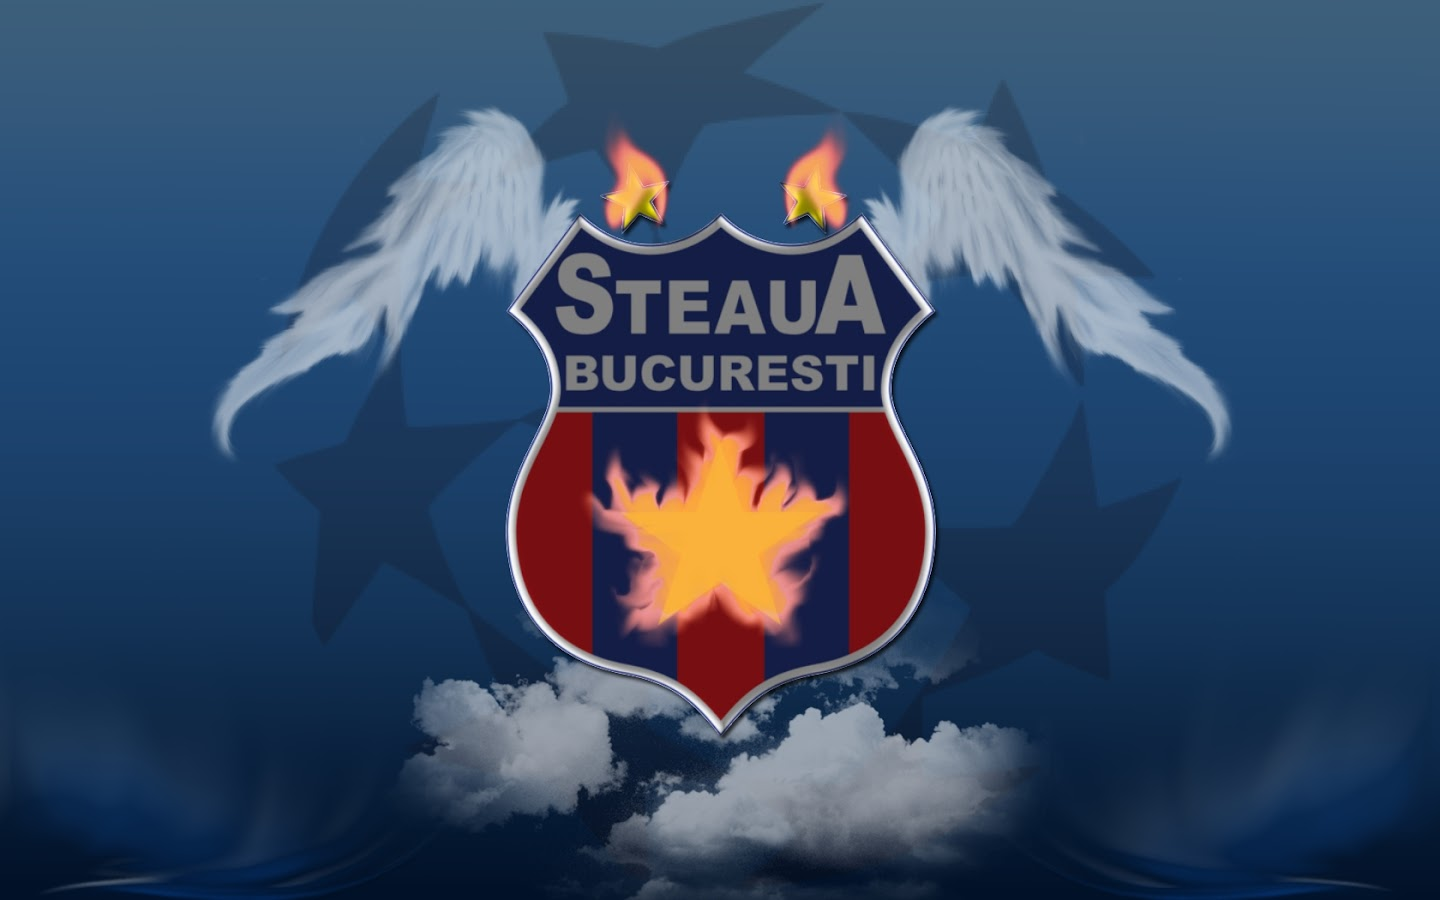 1440x900 bucuresti hd steaua bucuresti Wallpaper download